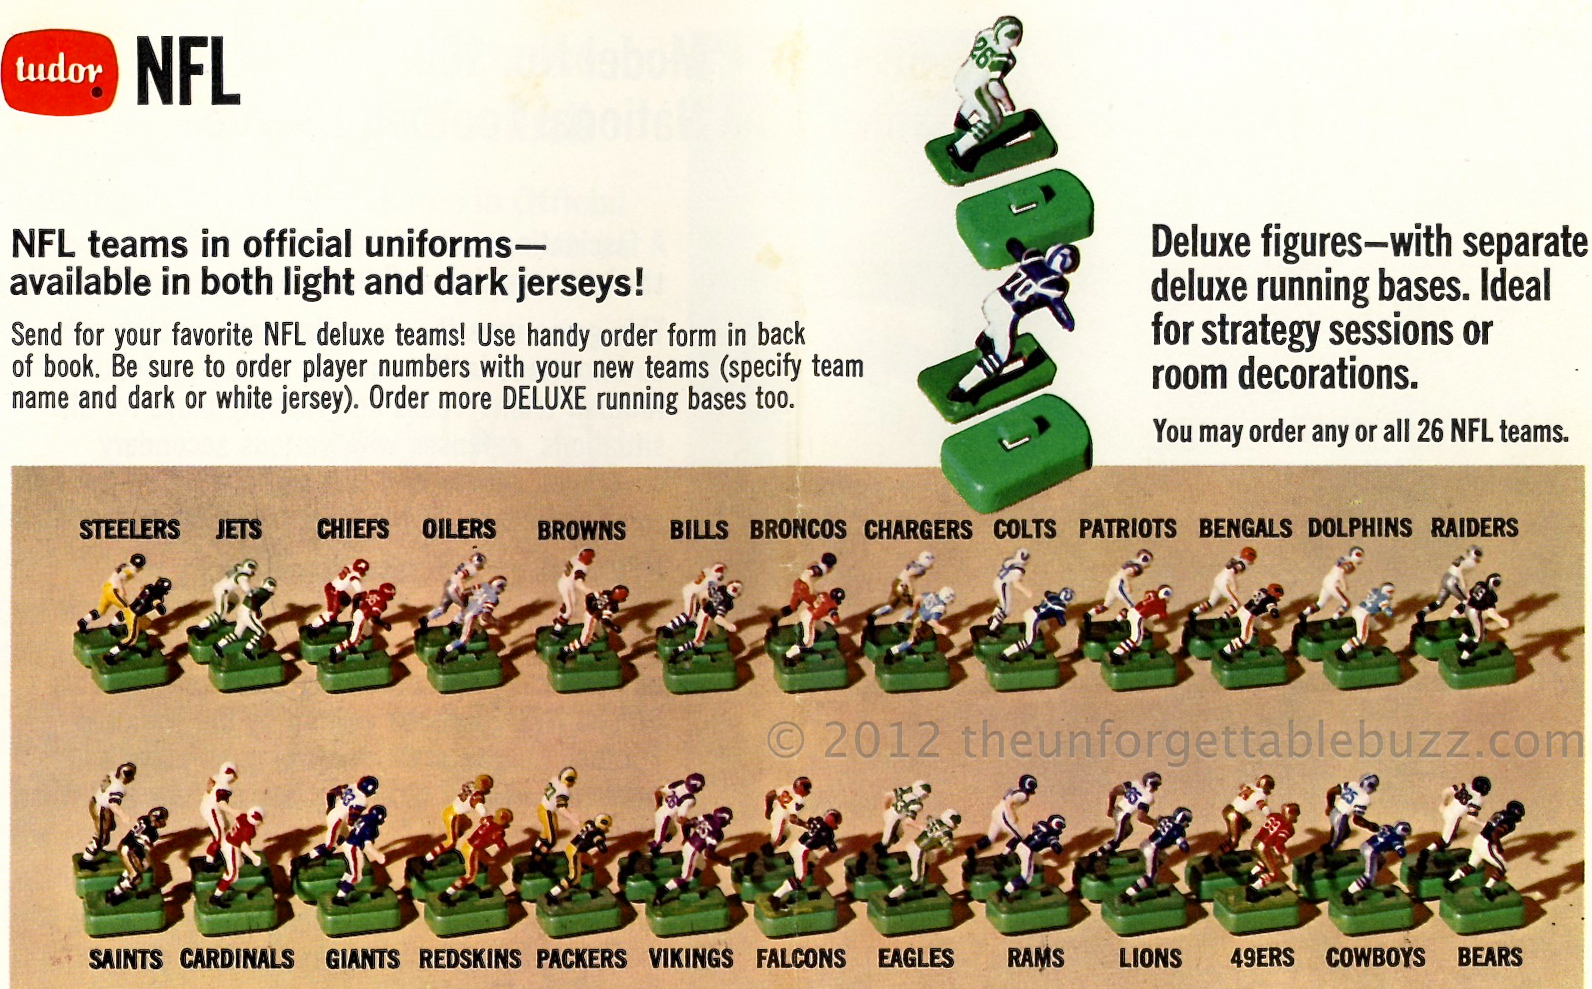 bf117962 Electric Football History The Unforgettable Buzz - Page 14 of 17 ...